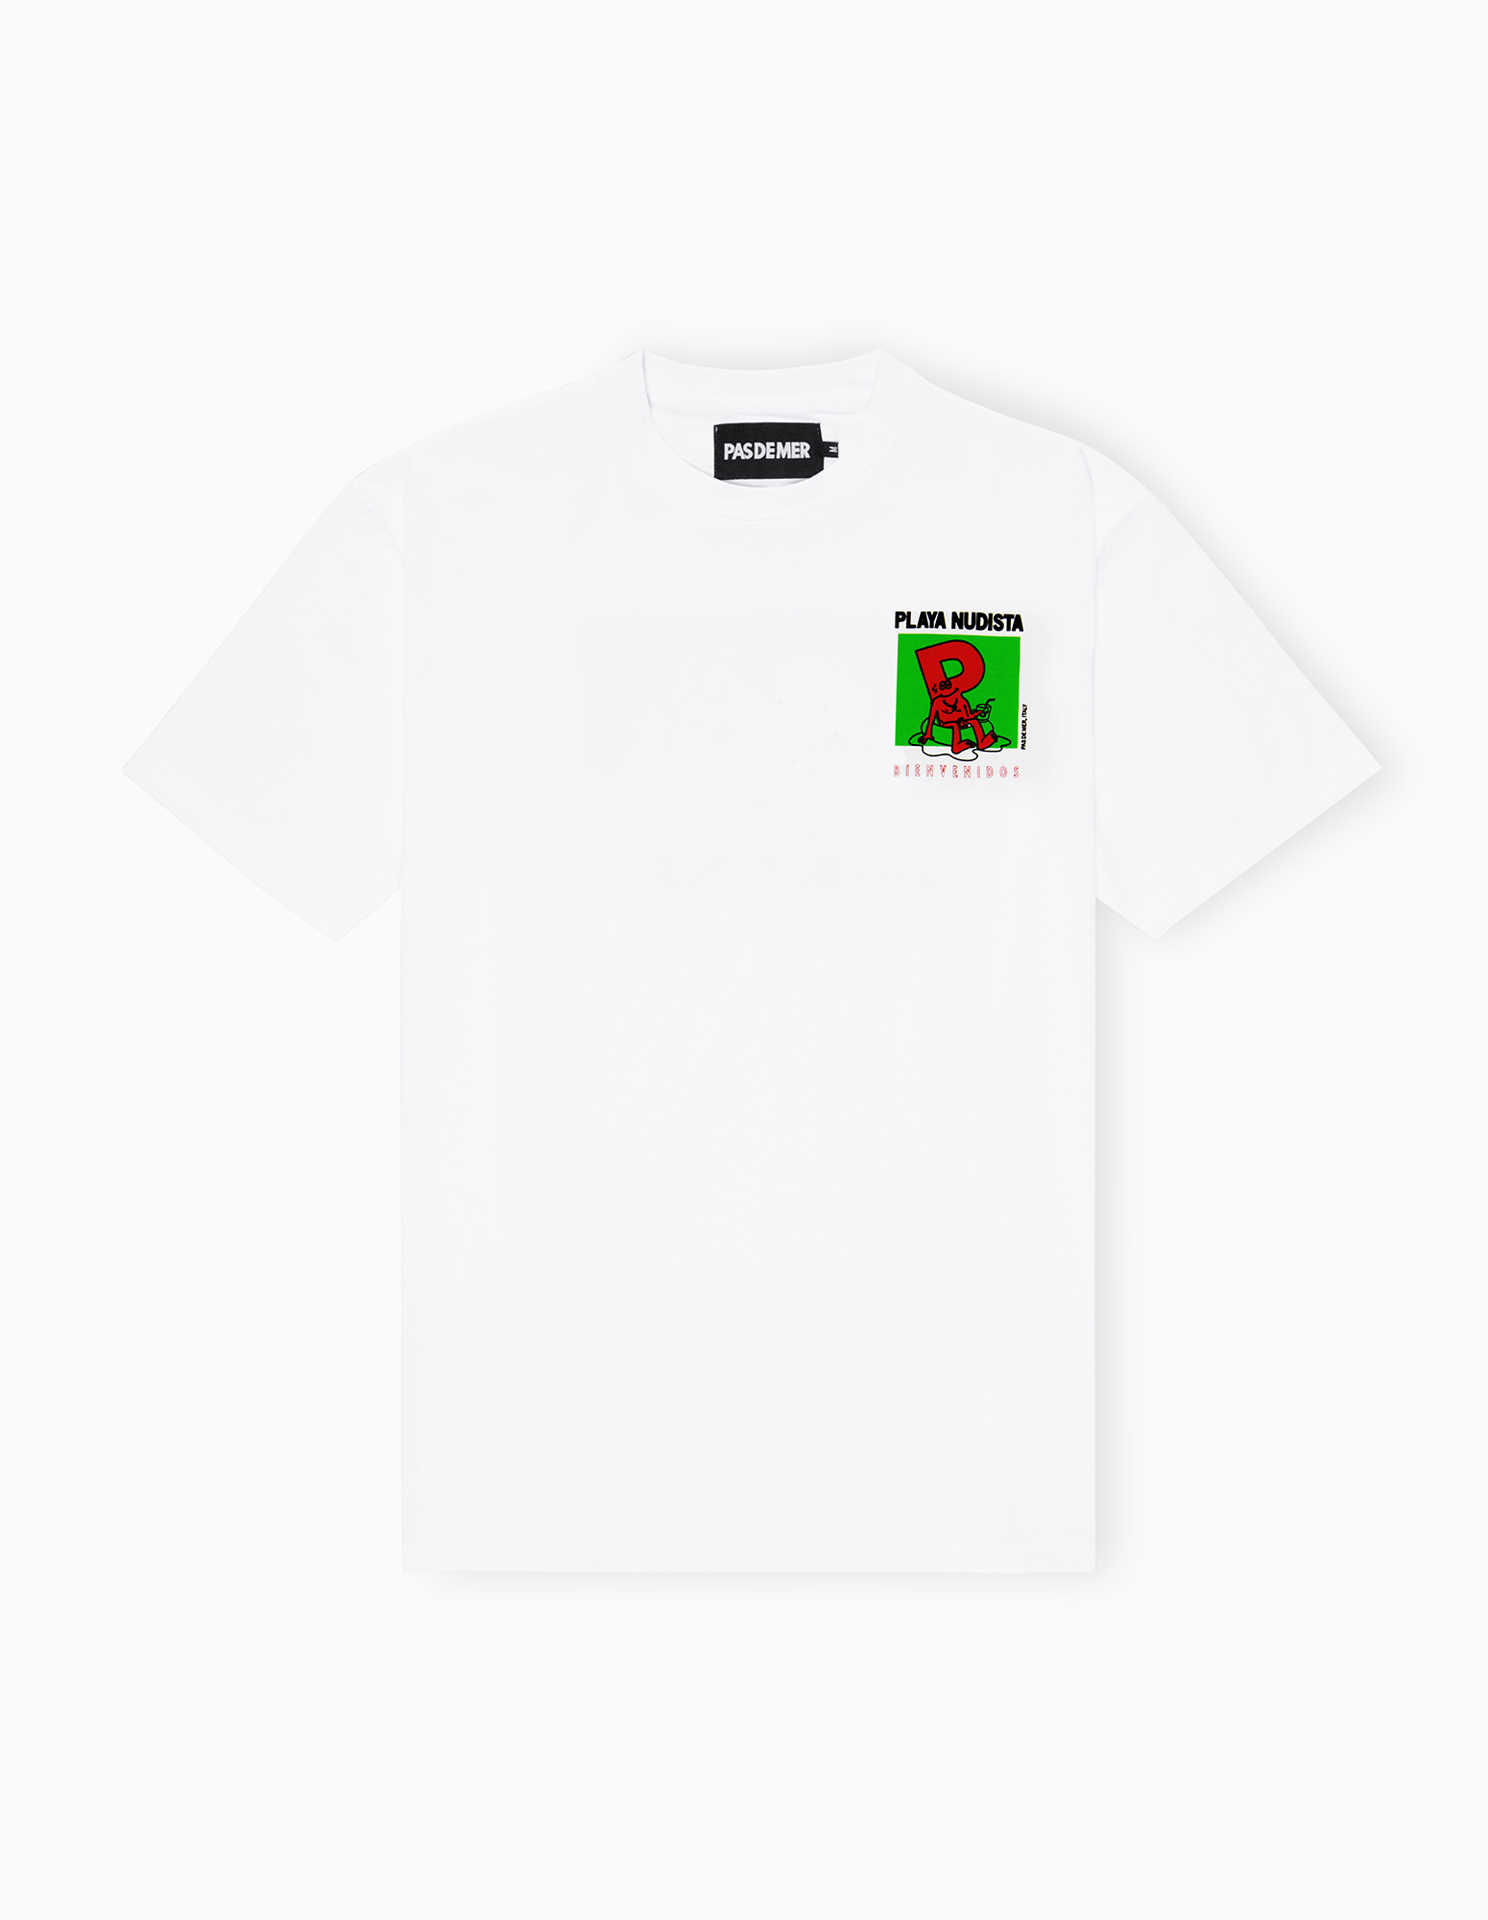 【PAS DE MER/パドゥメ】PLAYA NUDISTA T-SHIRT Tシャツ / WHITE